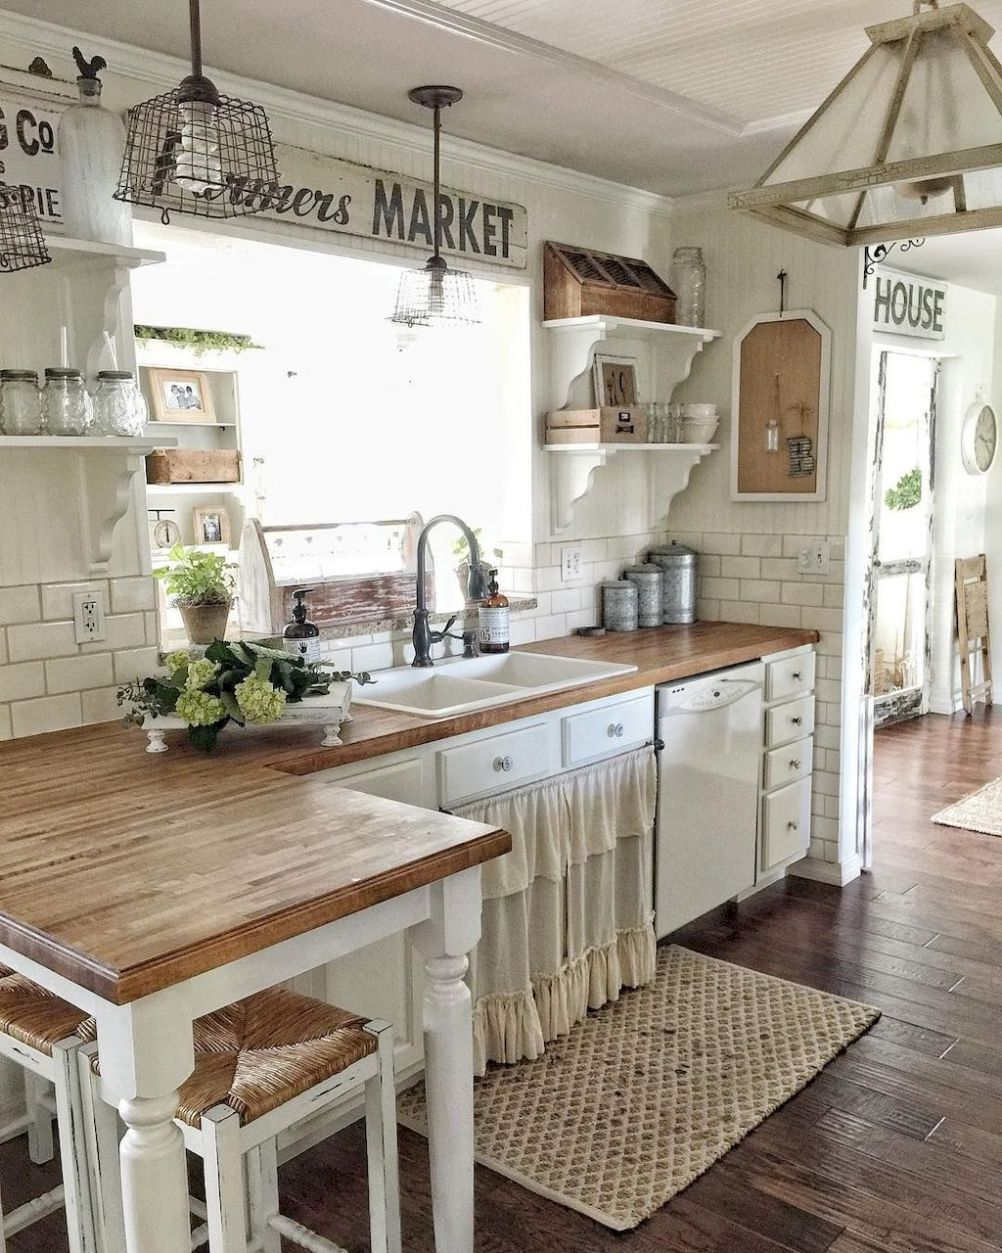 Kitchen Decor 50 Elegant Farmhouse Kitchen Decor Ideas 29 Home Design Ideas